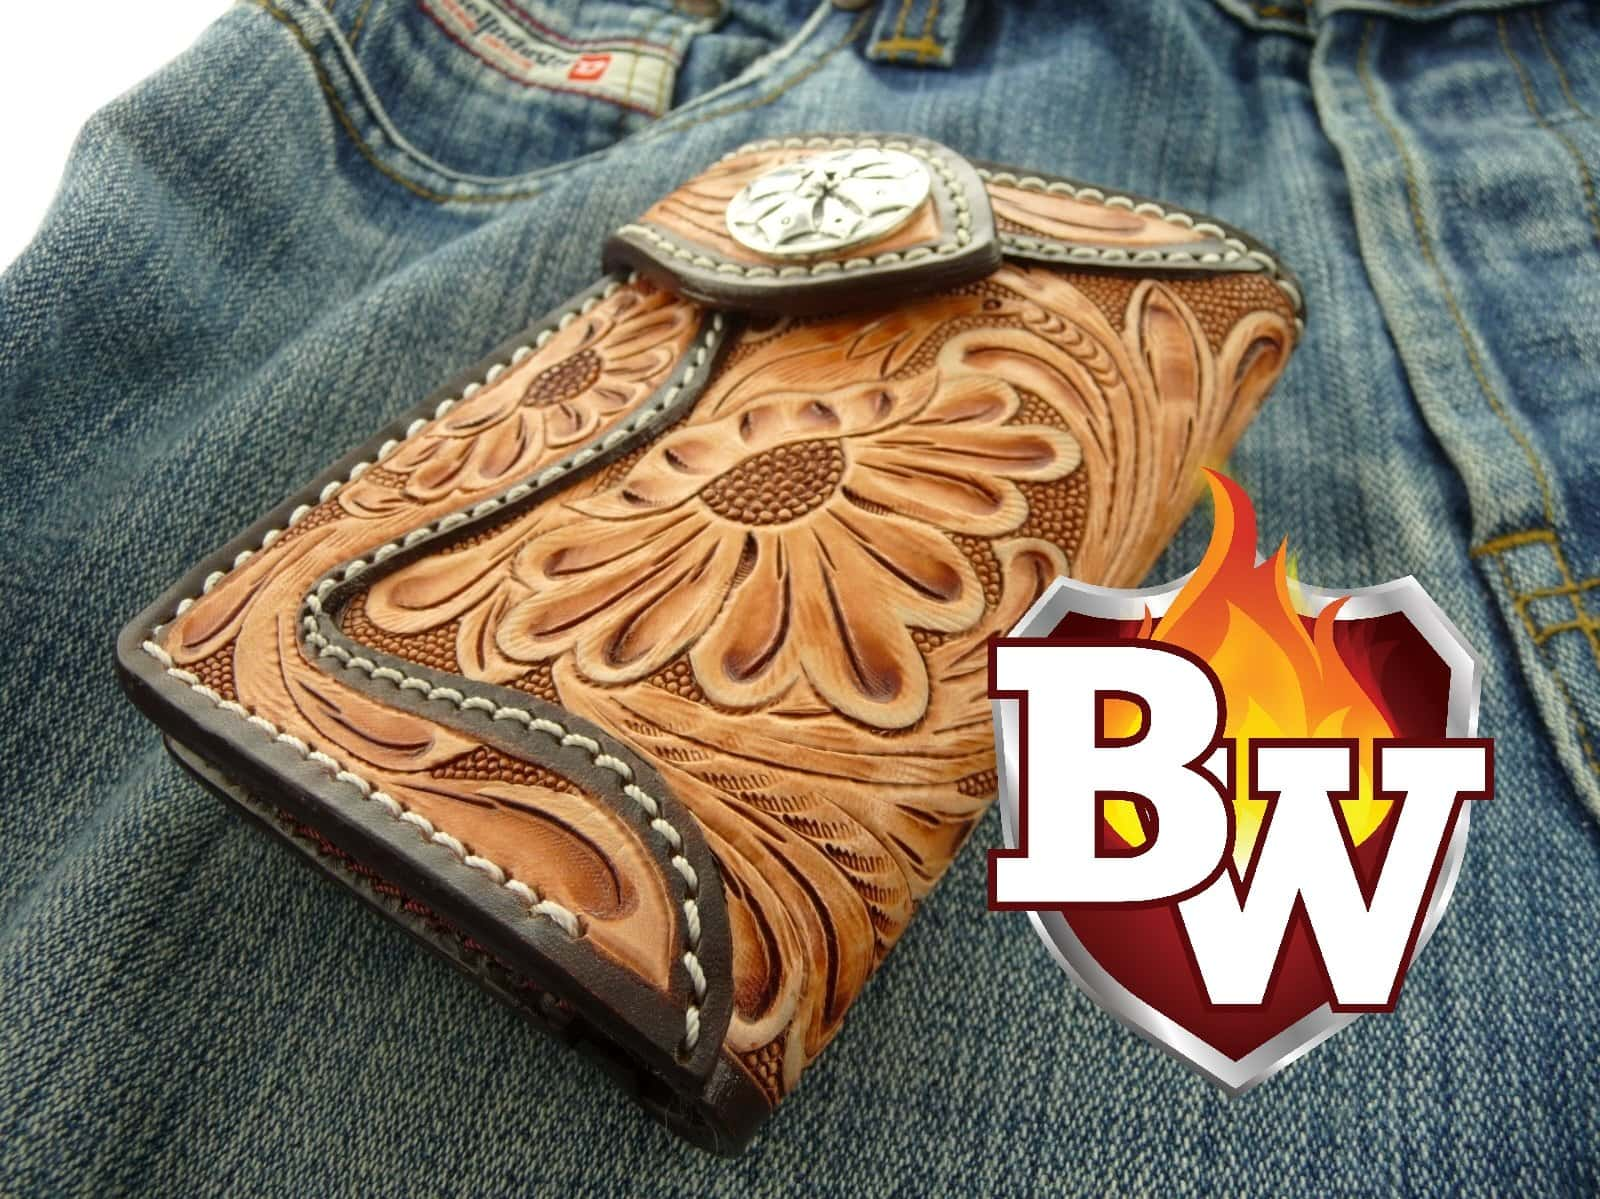 Western Rider Pip Squeek 6 Leather Men's Biker Wallet - Handcrafted Quality Genine Leather Backed by a 5-Year Warranty - Biker-Wallets.com